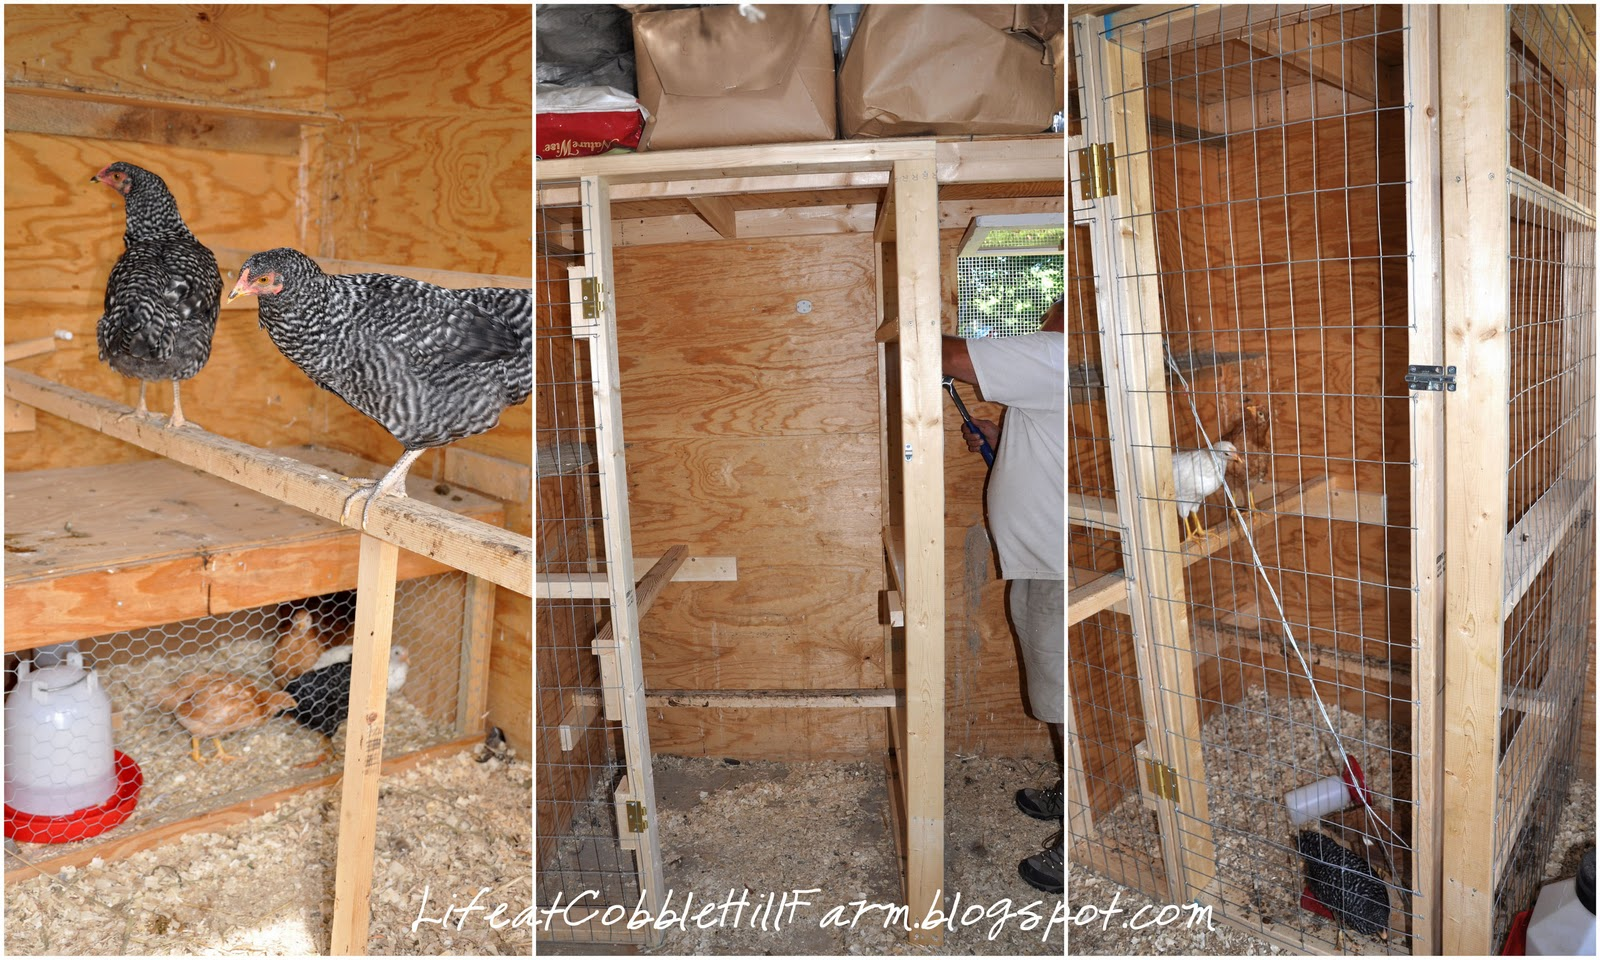 21 Chicken Coop Designs and Ideas You Need For Your Homestead